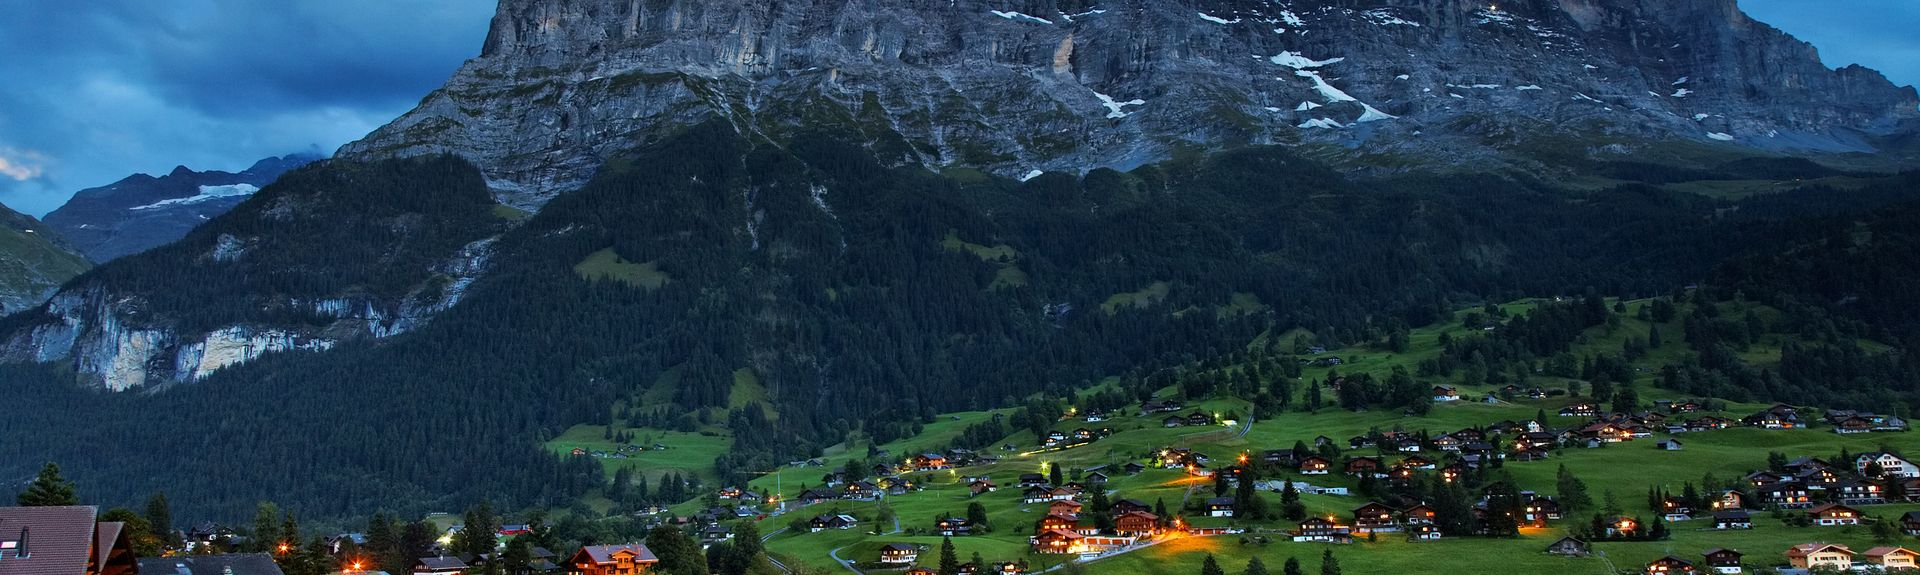 Grindelwald, Bern, Switzerland